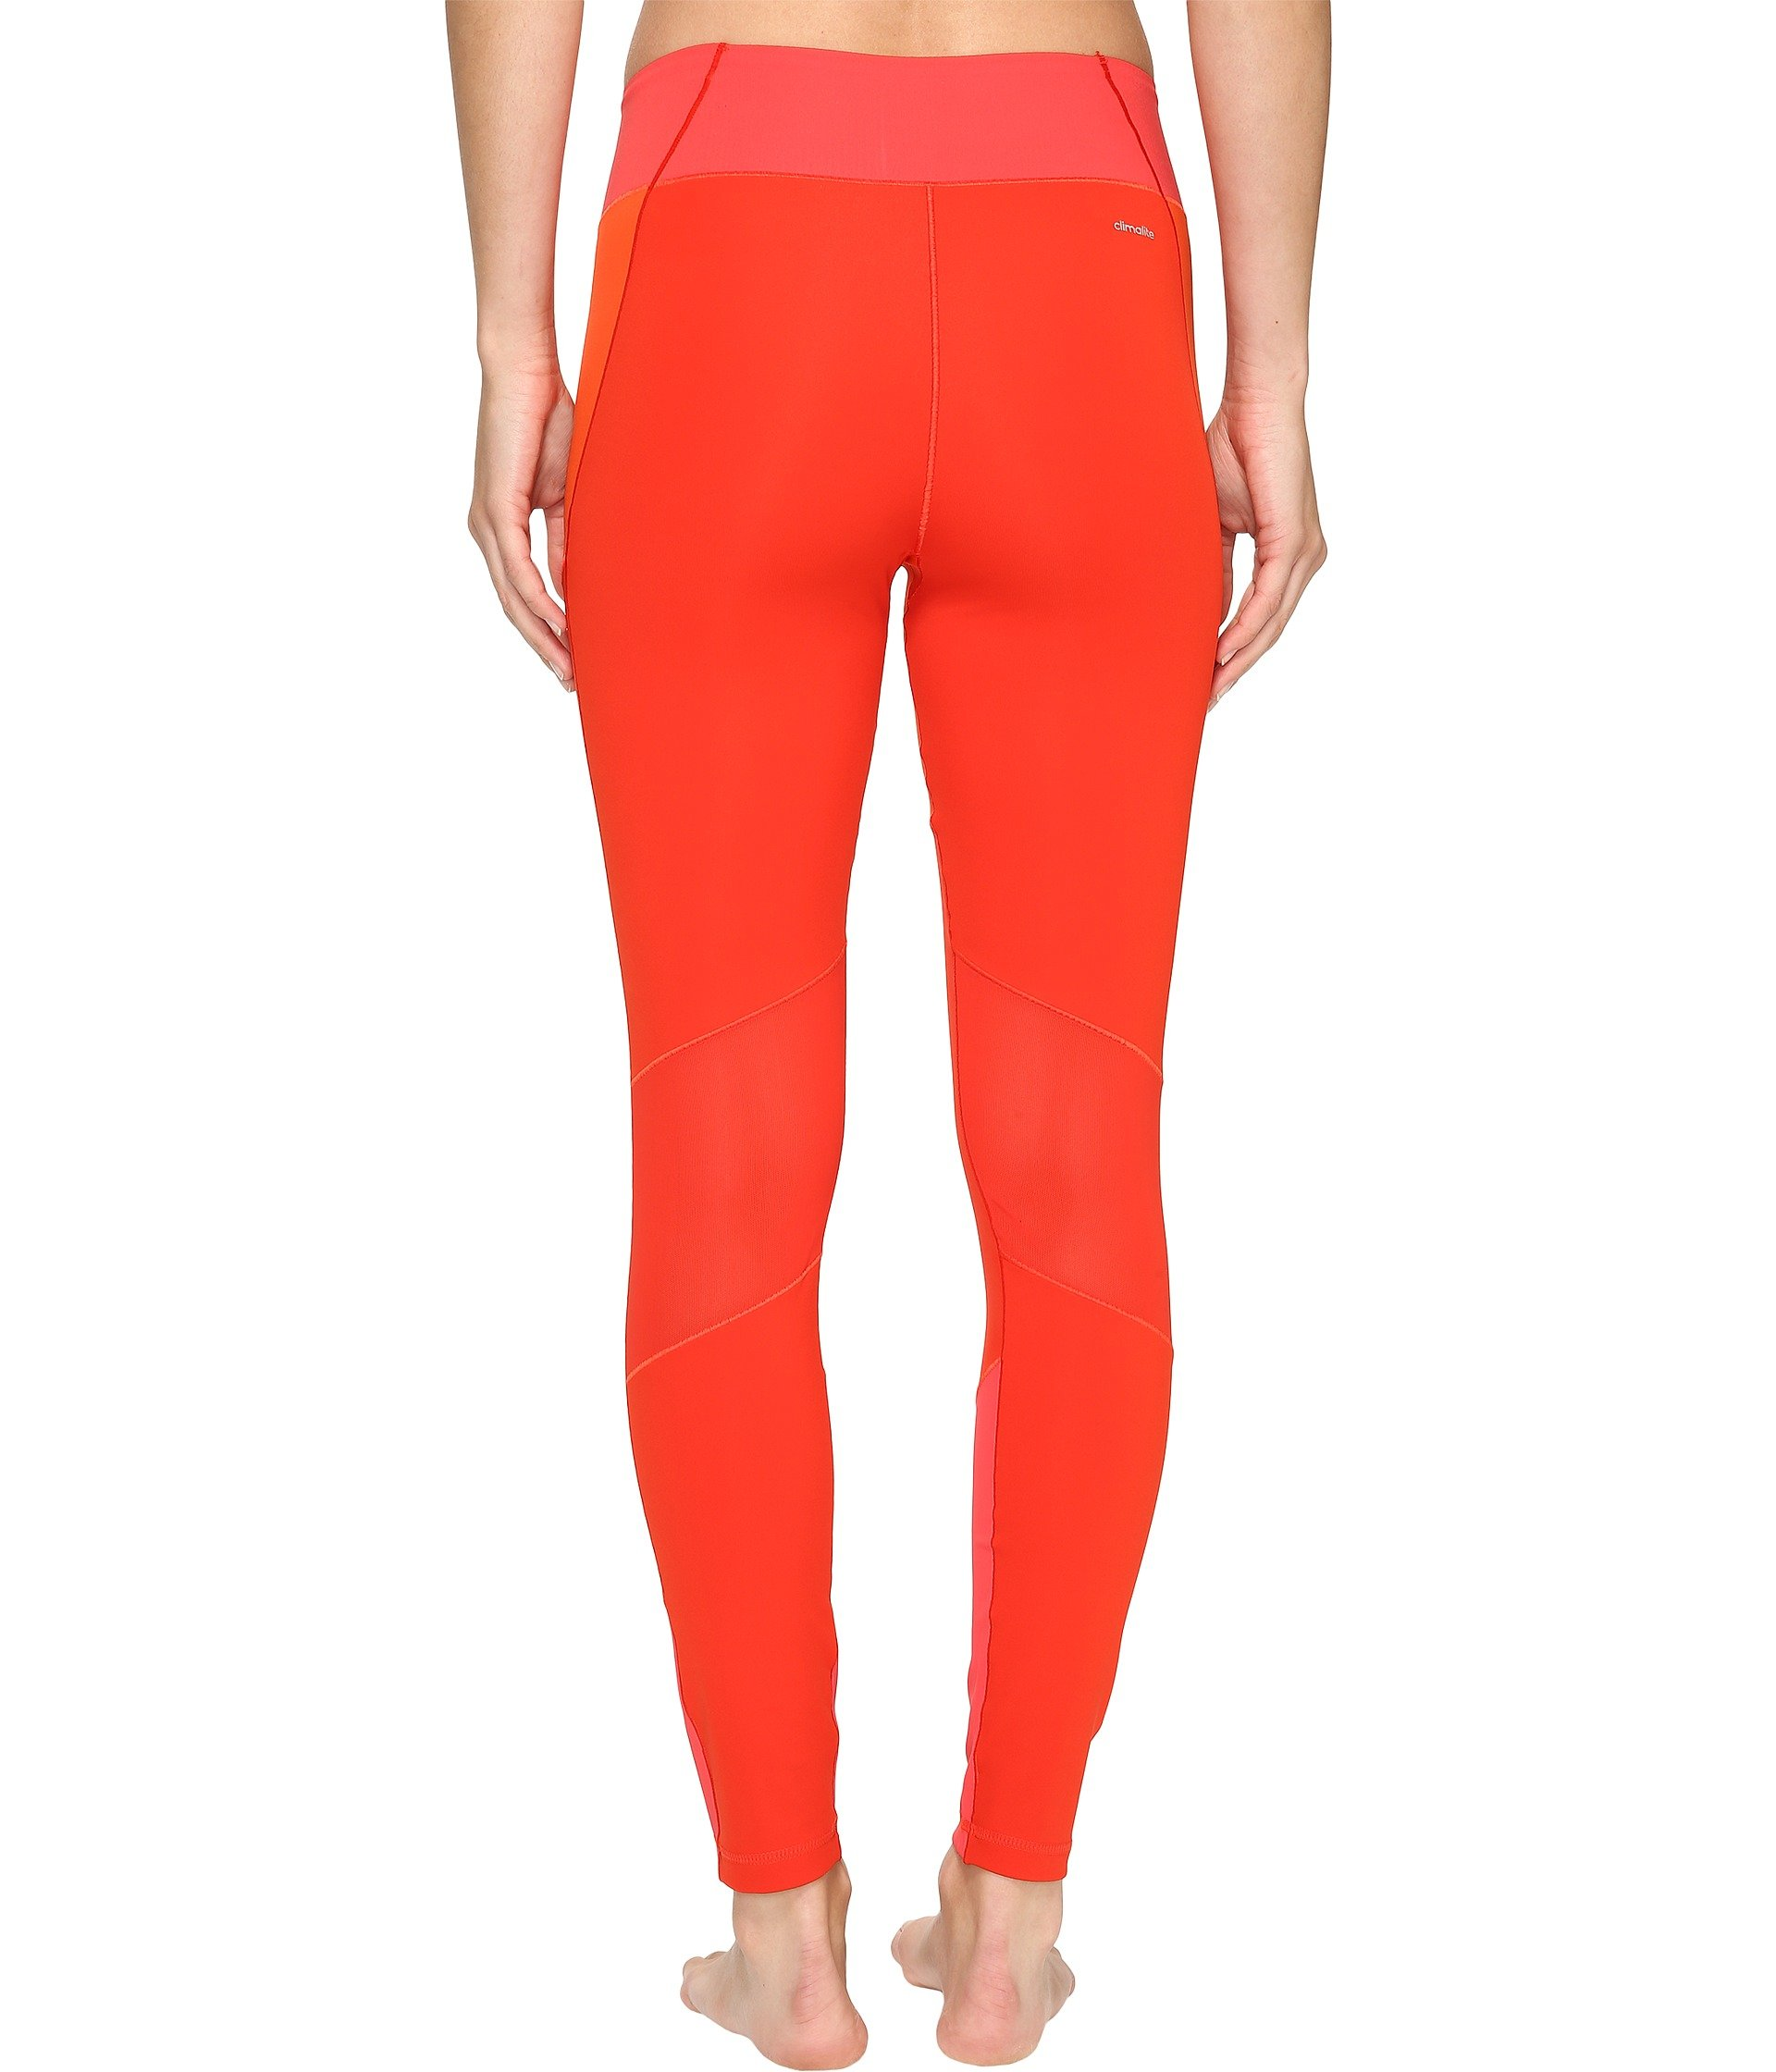 adidas Women's Training Wow Drop Tights, Core Red/Core Pink, X-Small by adidas (Image #4)